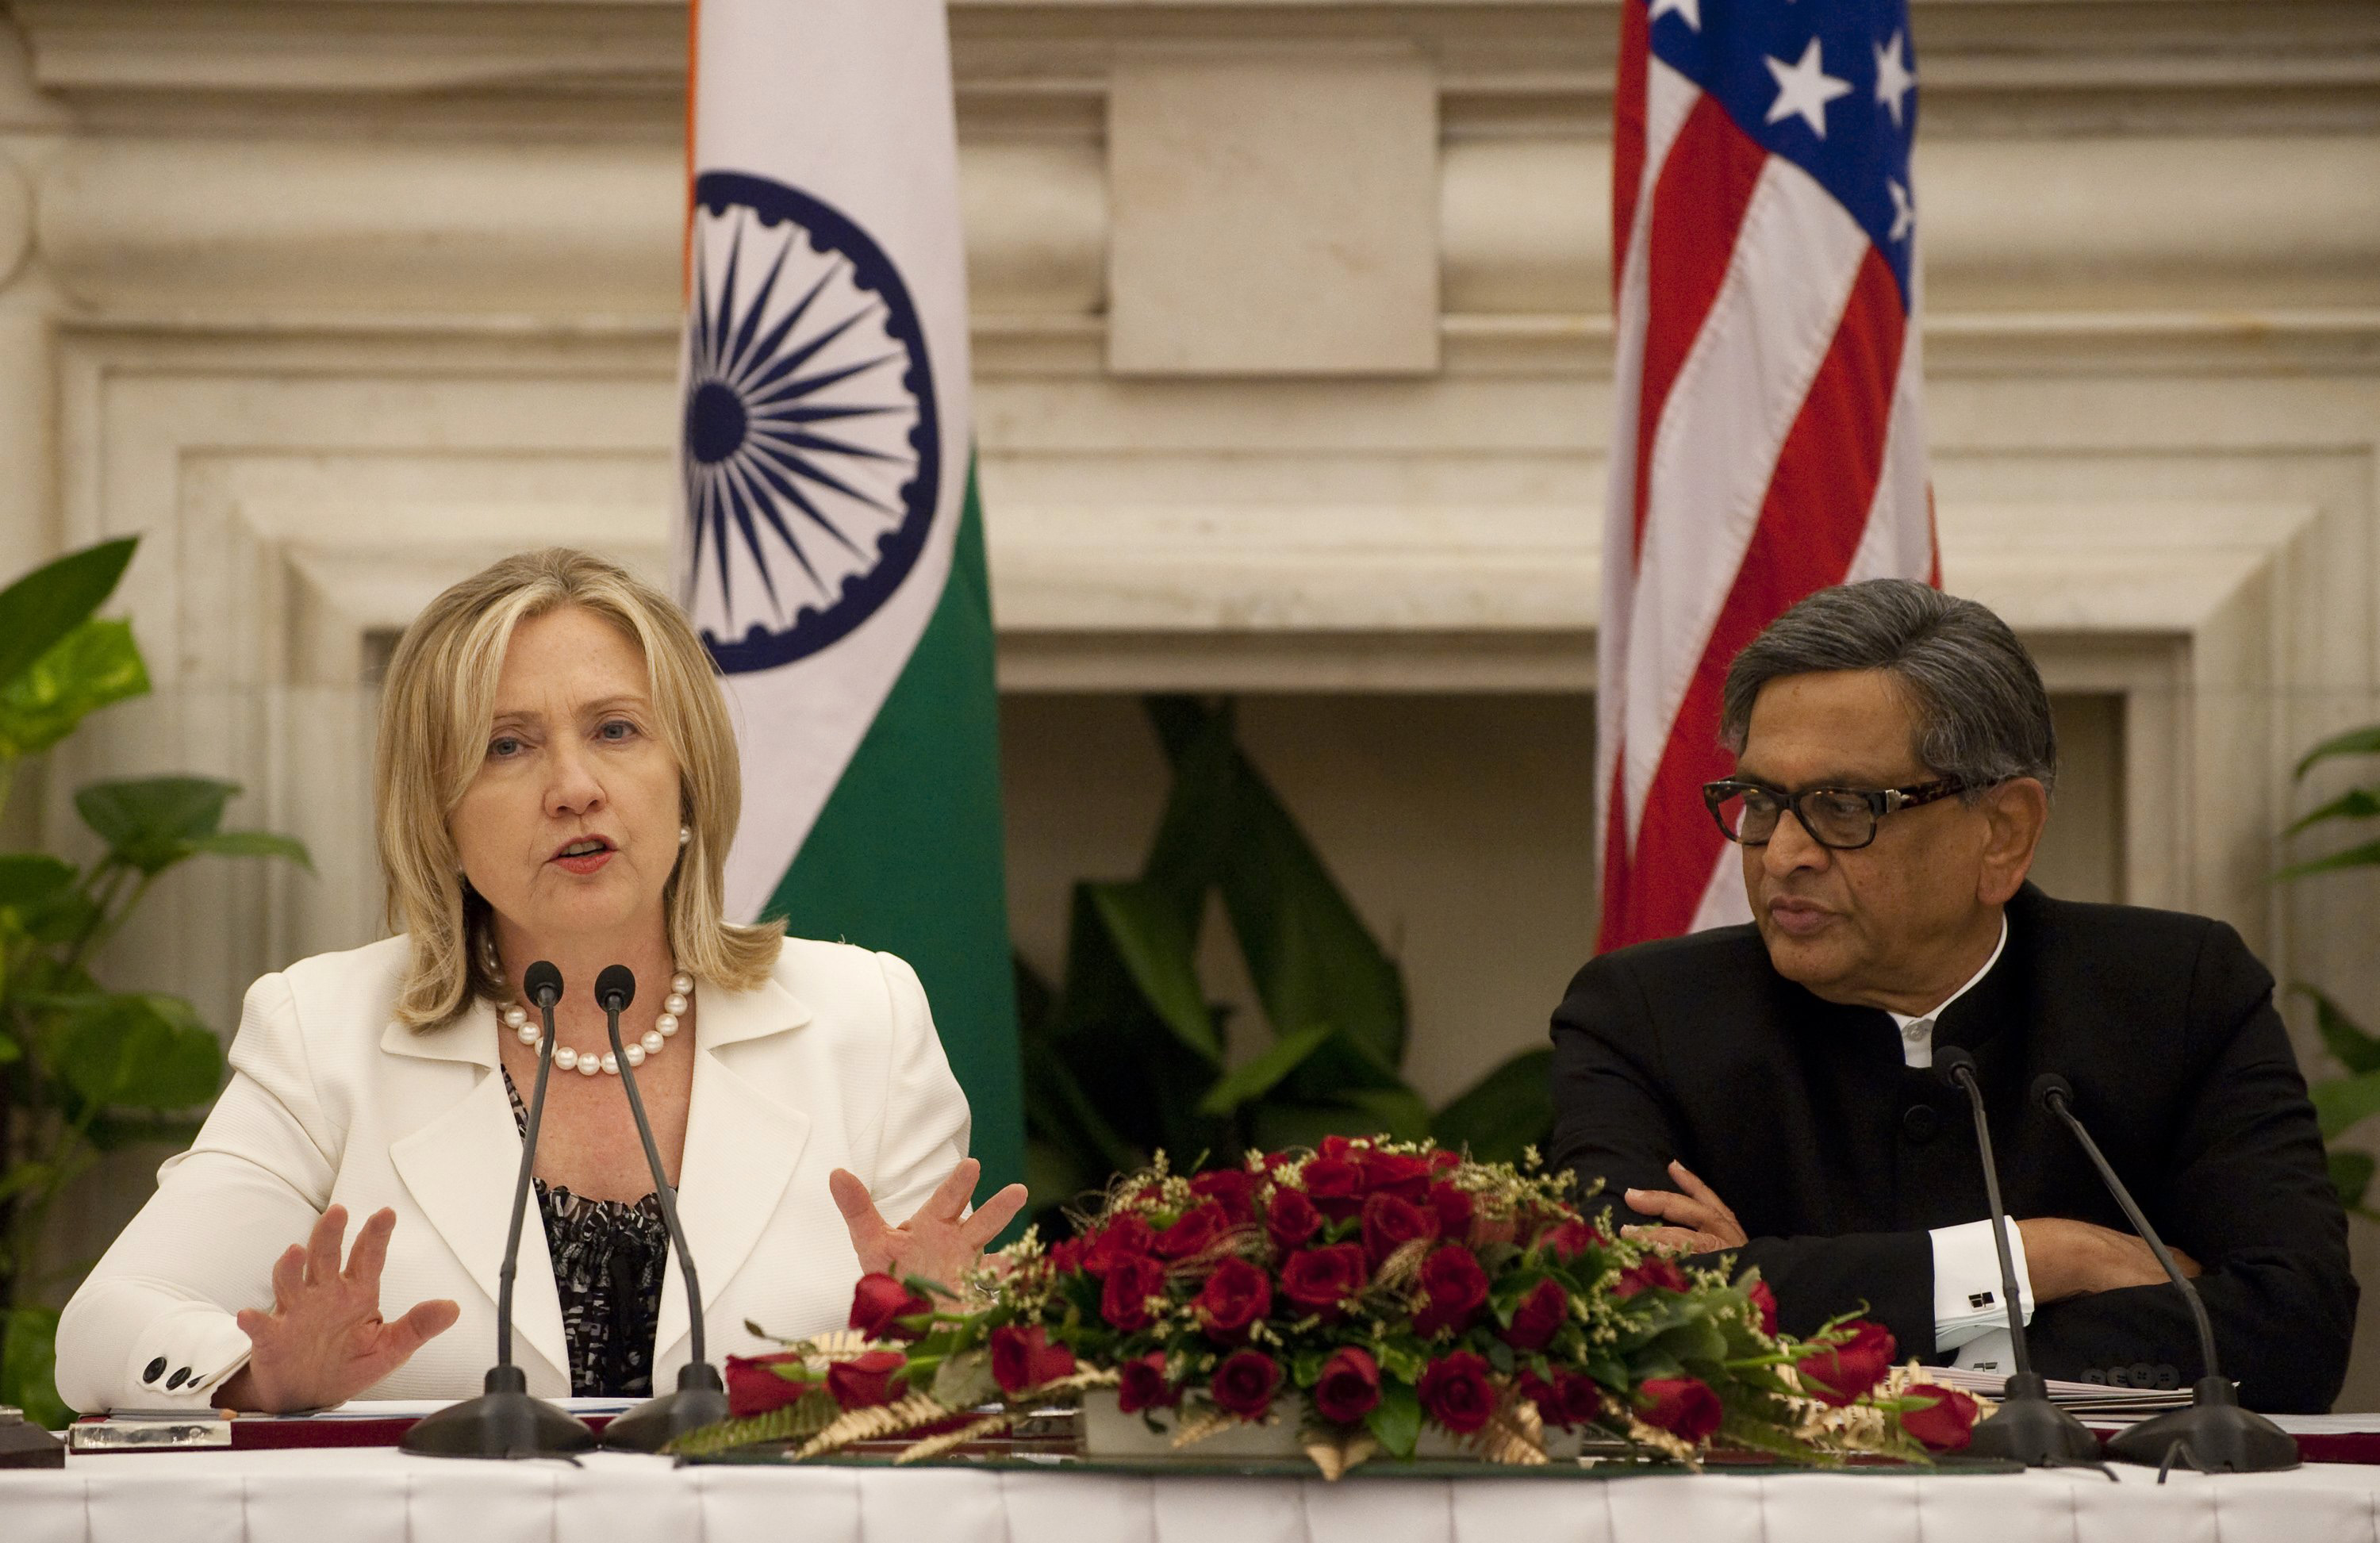 "US Secretary of State Hillary Clinton and Indian Foreign Minister S.M. Krishna hold a joint press conference during the US-India Strategic Dialogue at Hyderabad House in New Delhi on July 19, 2011. US Secretary of State Hillary Clinton called for deeper regional security cooperation and trade ties in talks with Indian leaders, held in the shadow of triple bomb blasts in Mumbai. India's concerns over the US troop drawdown in Afghanistan and New Delhi's renewed peace talks with arch-rival Pakistan are expected to figure in the ""strategic dialogue"" underway in the Indian capital. AFP PHOTO / POOL / Saul LOEB (Photo credit should read SAUL LOEB/AFP/Getty Images)"